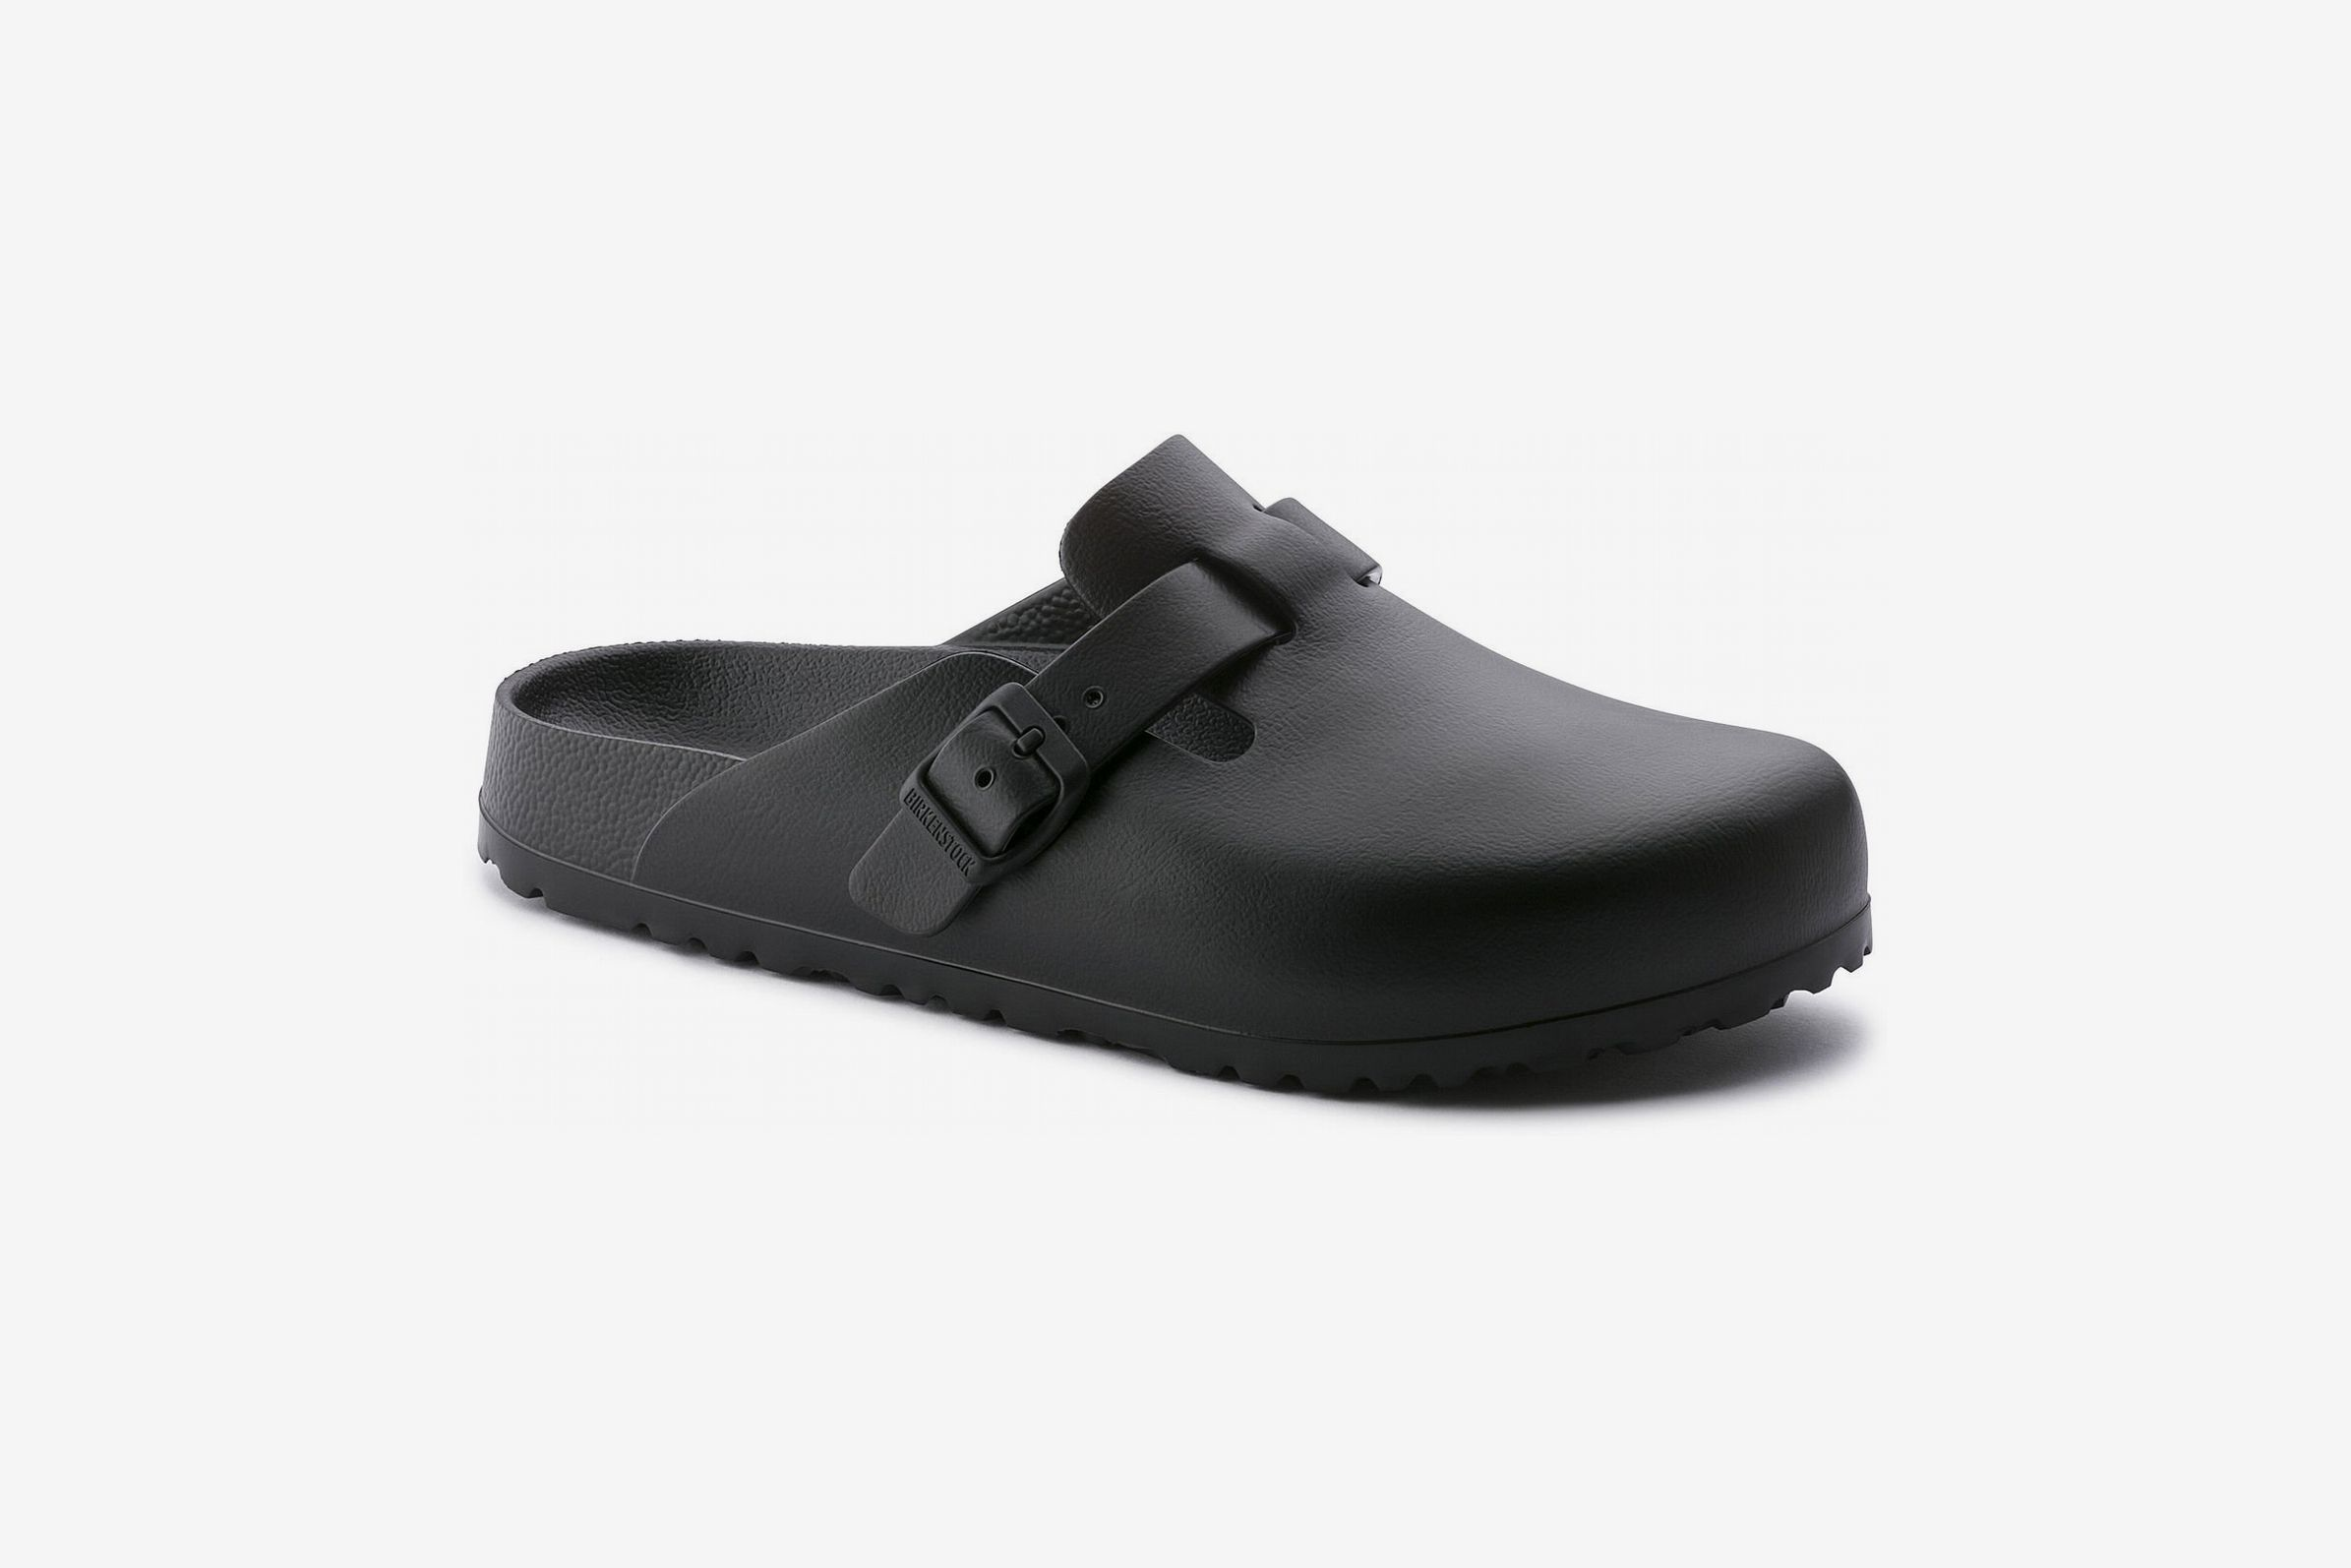 521aa43ea90 Best Clogs for Men: How to Wear and Style Clogs 2019